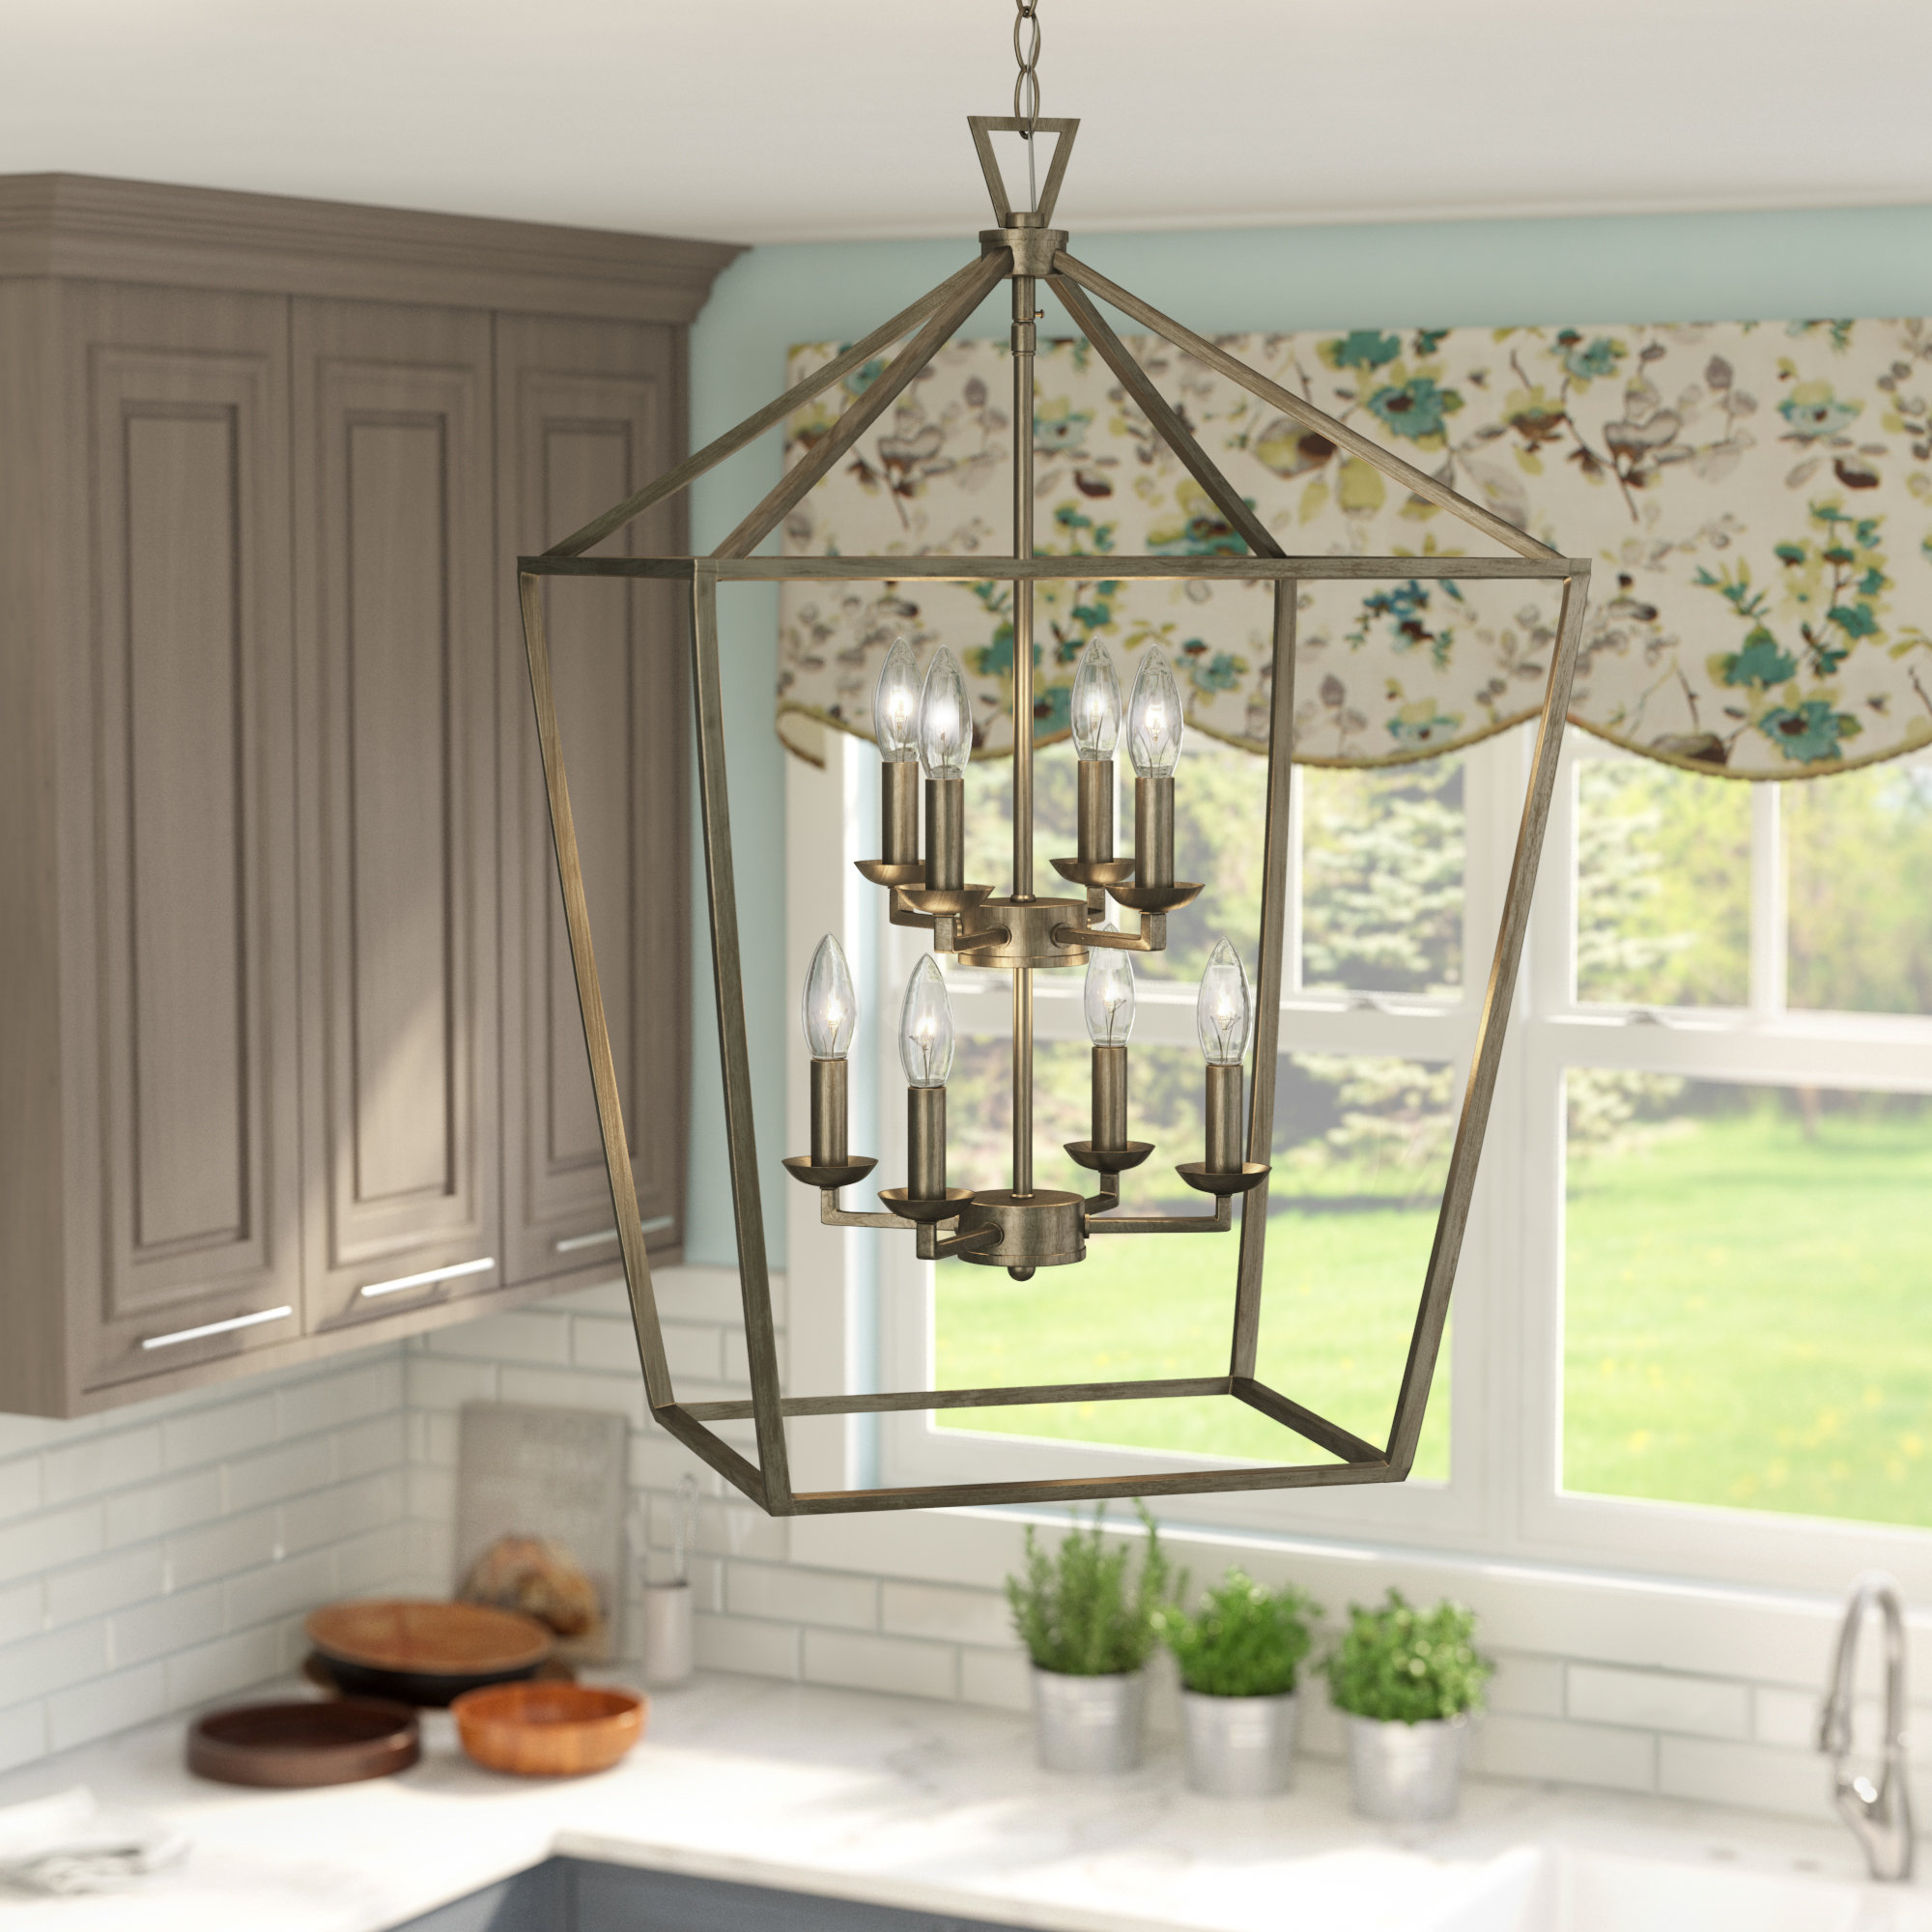 Newest Small Lantern Pendant Light You'll Love In  (View 18 of 25)